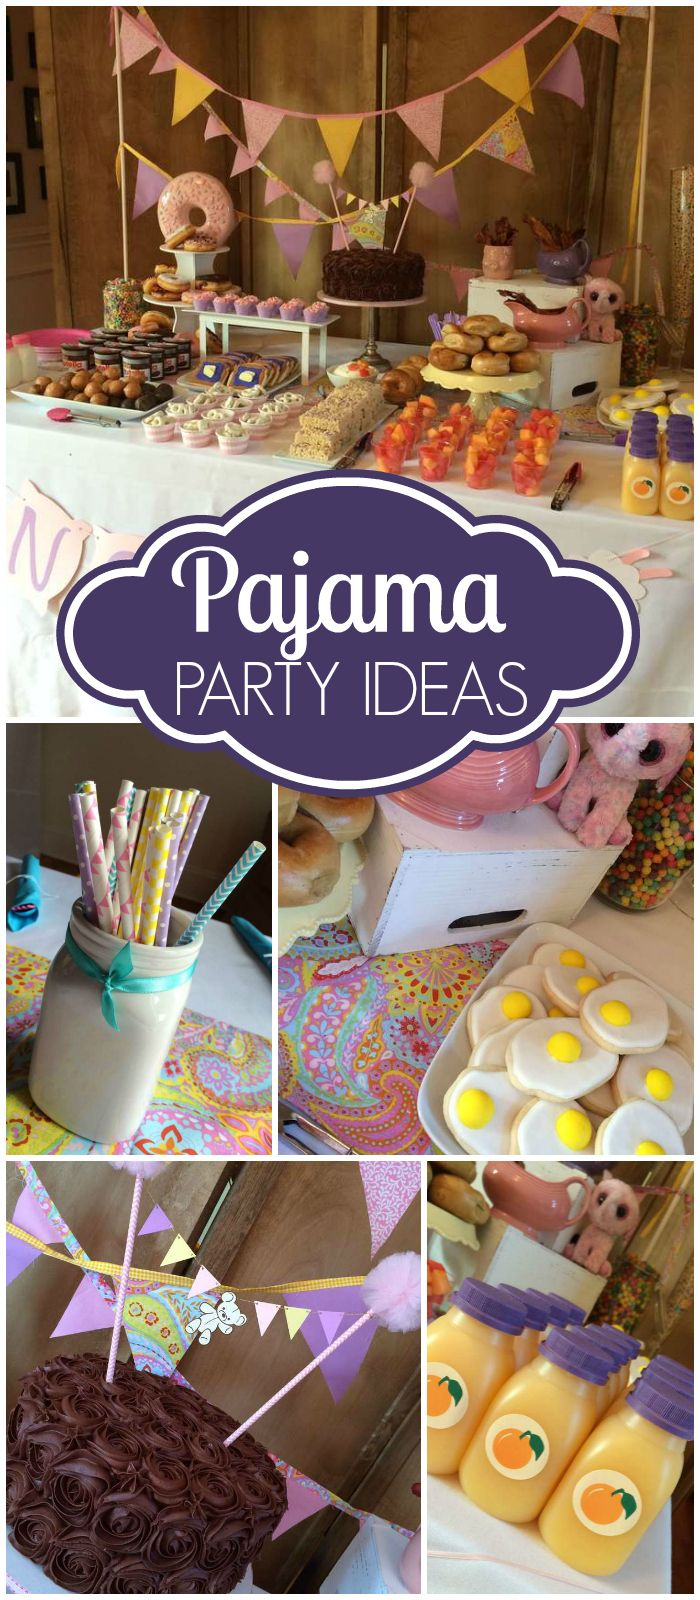 Here's a pajama party with a stuffed animal making workshop! See more party ideas at CatchMyParty.com!